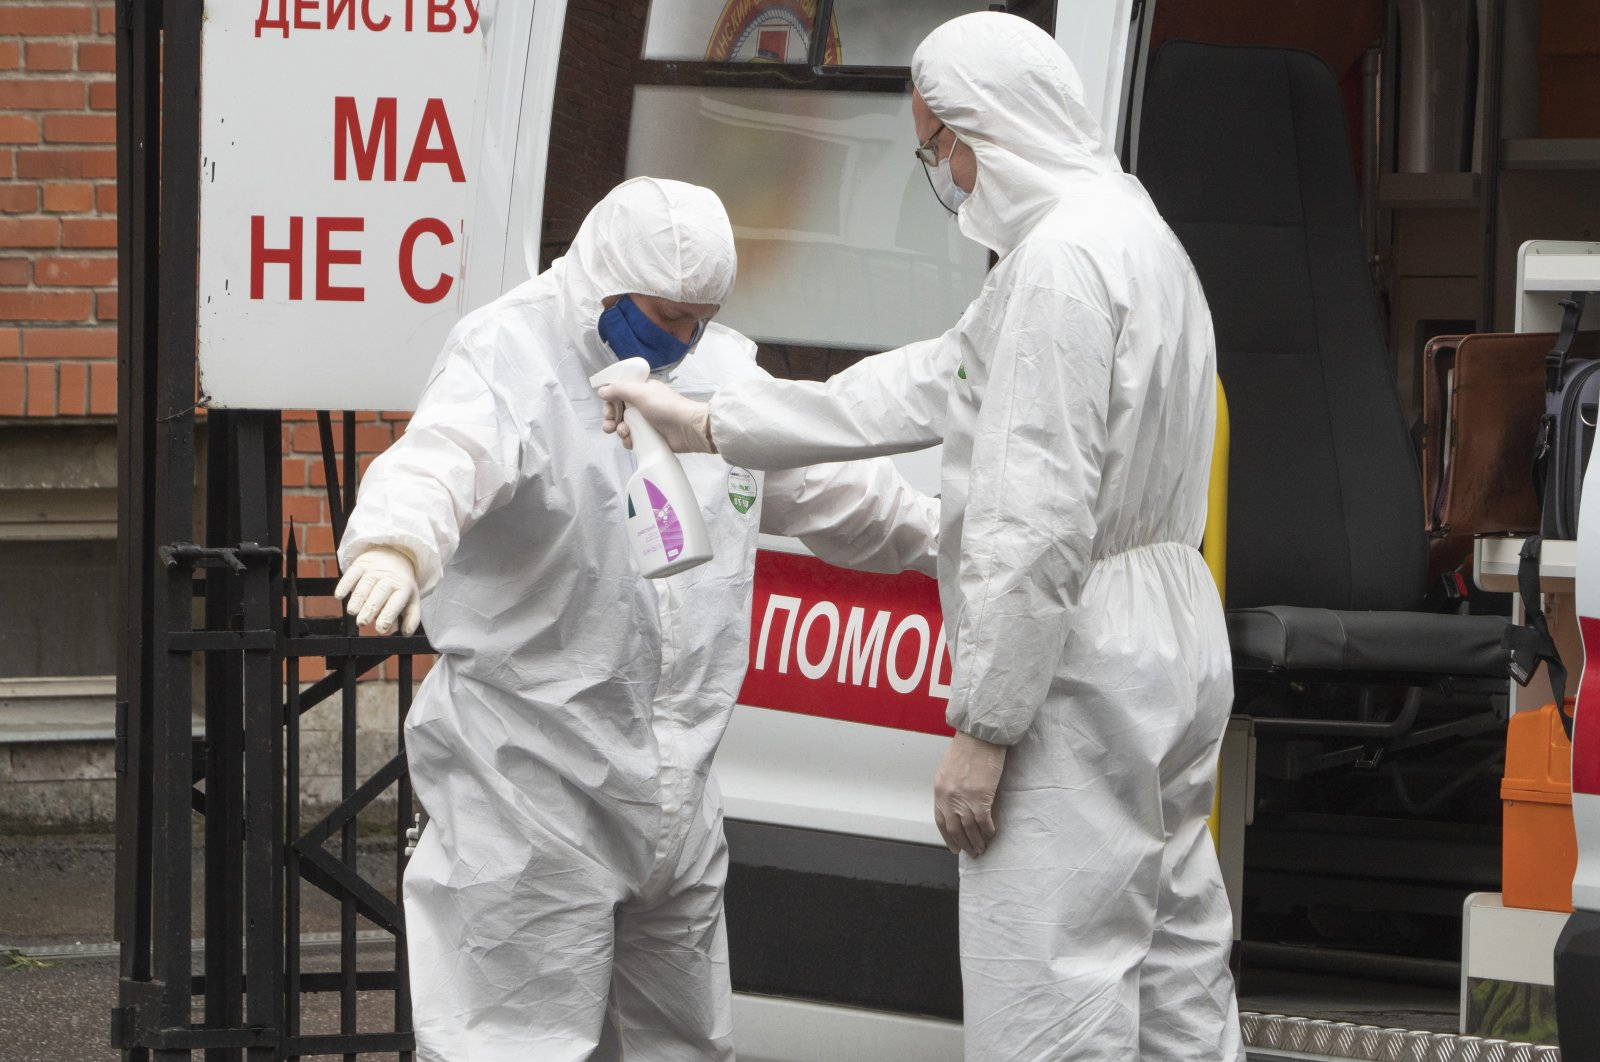 A medical worker wearing protective equipment disinfects his colleague after escorting a patient by ambulance to a hospital for COVID-19 patients in St. Petersburg, Russia, May 18, 2020. (AP Photo)